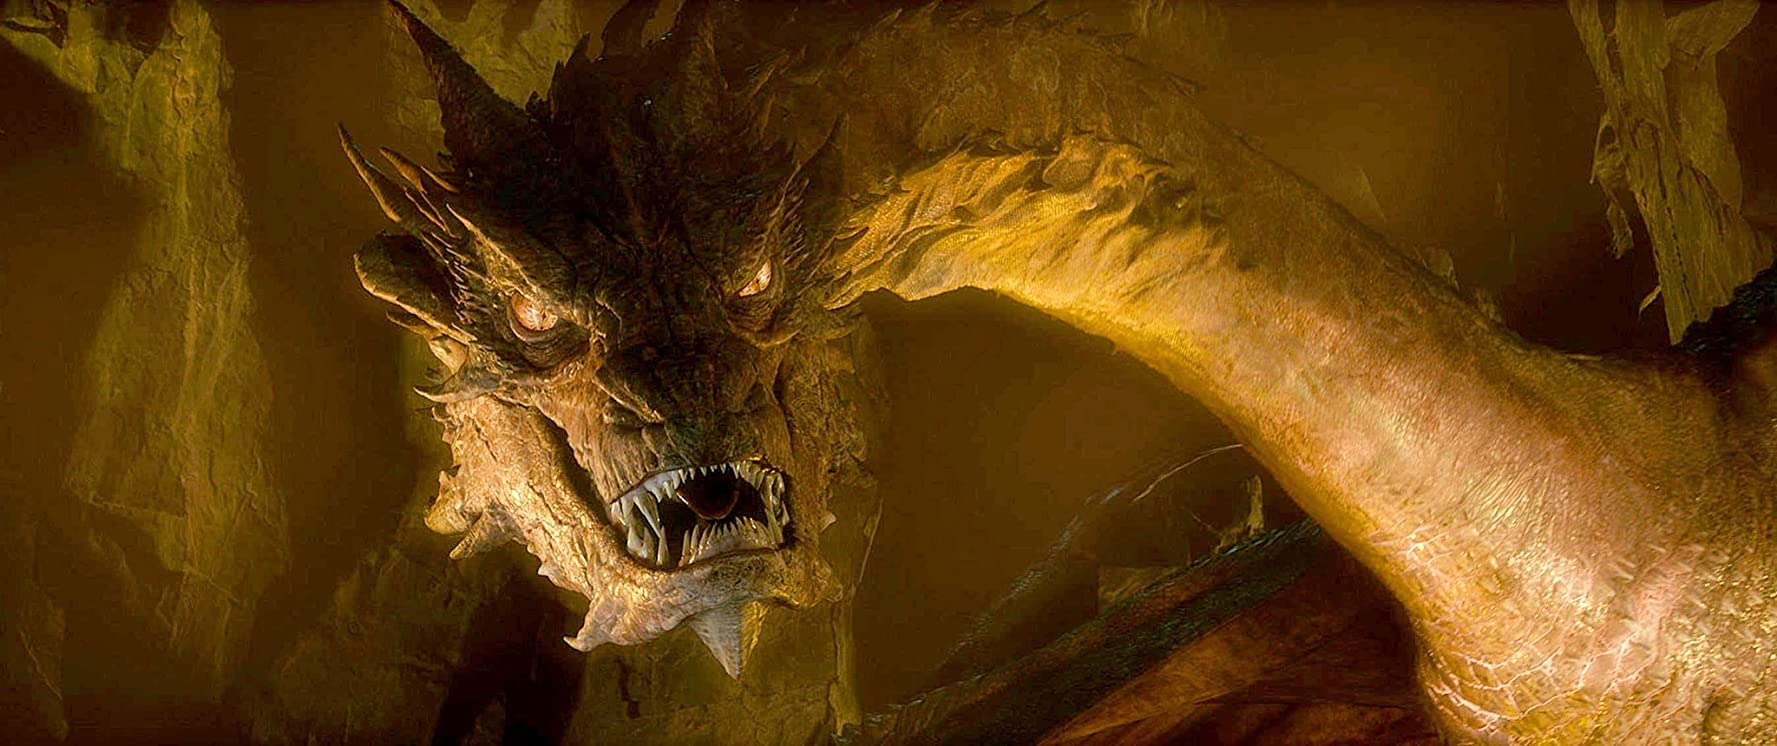 Benedict Cumberbatch in The Hobbit: The Desolation of Smaug (2013)